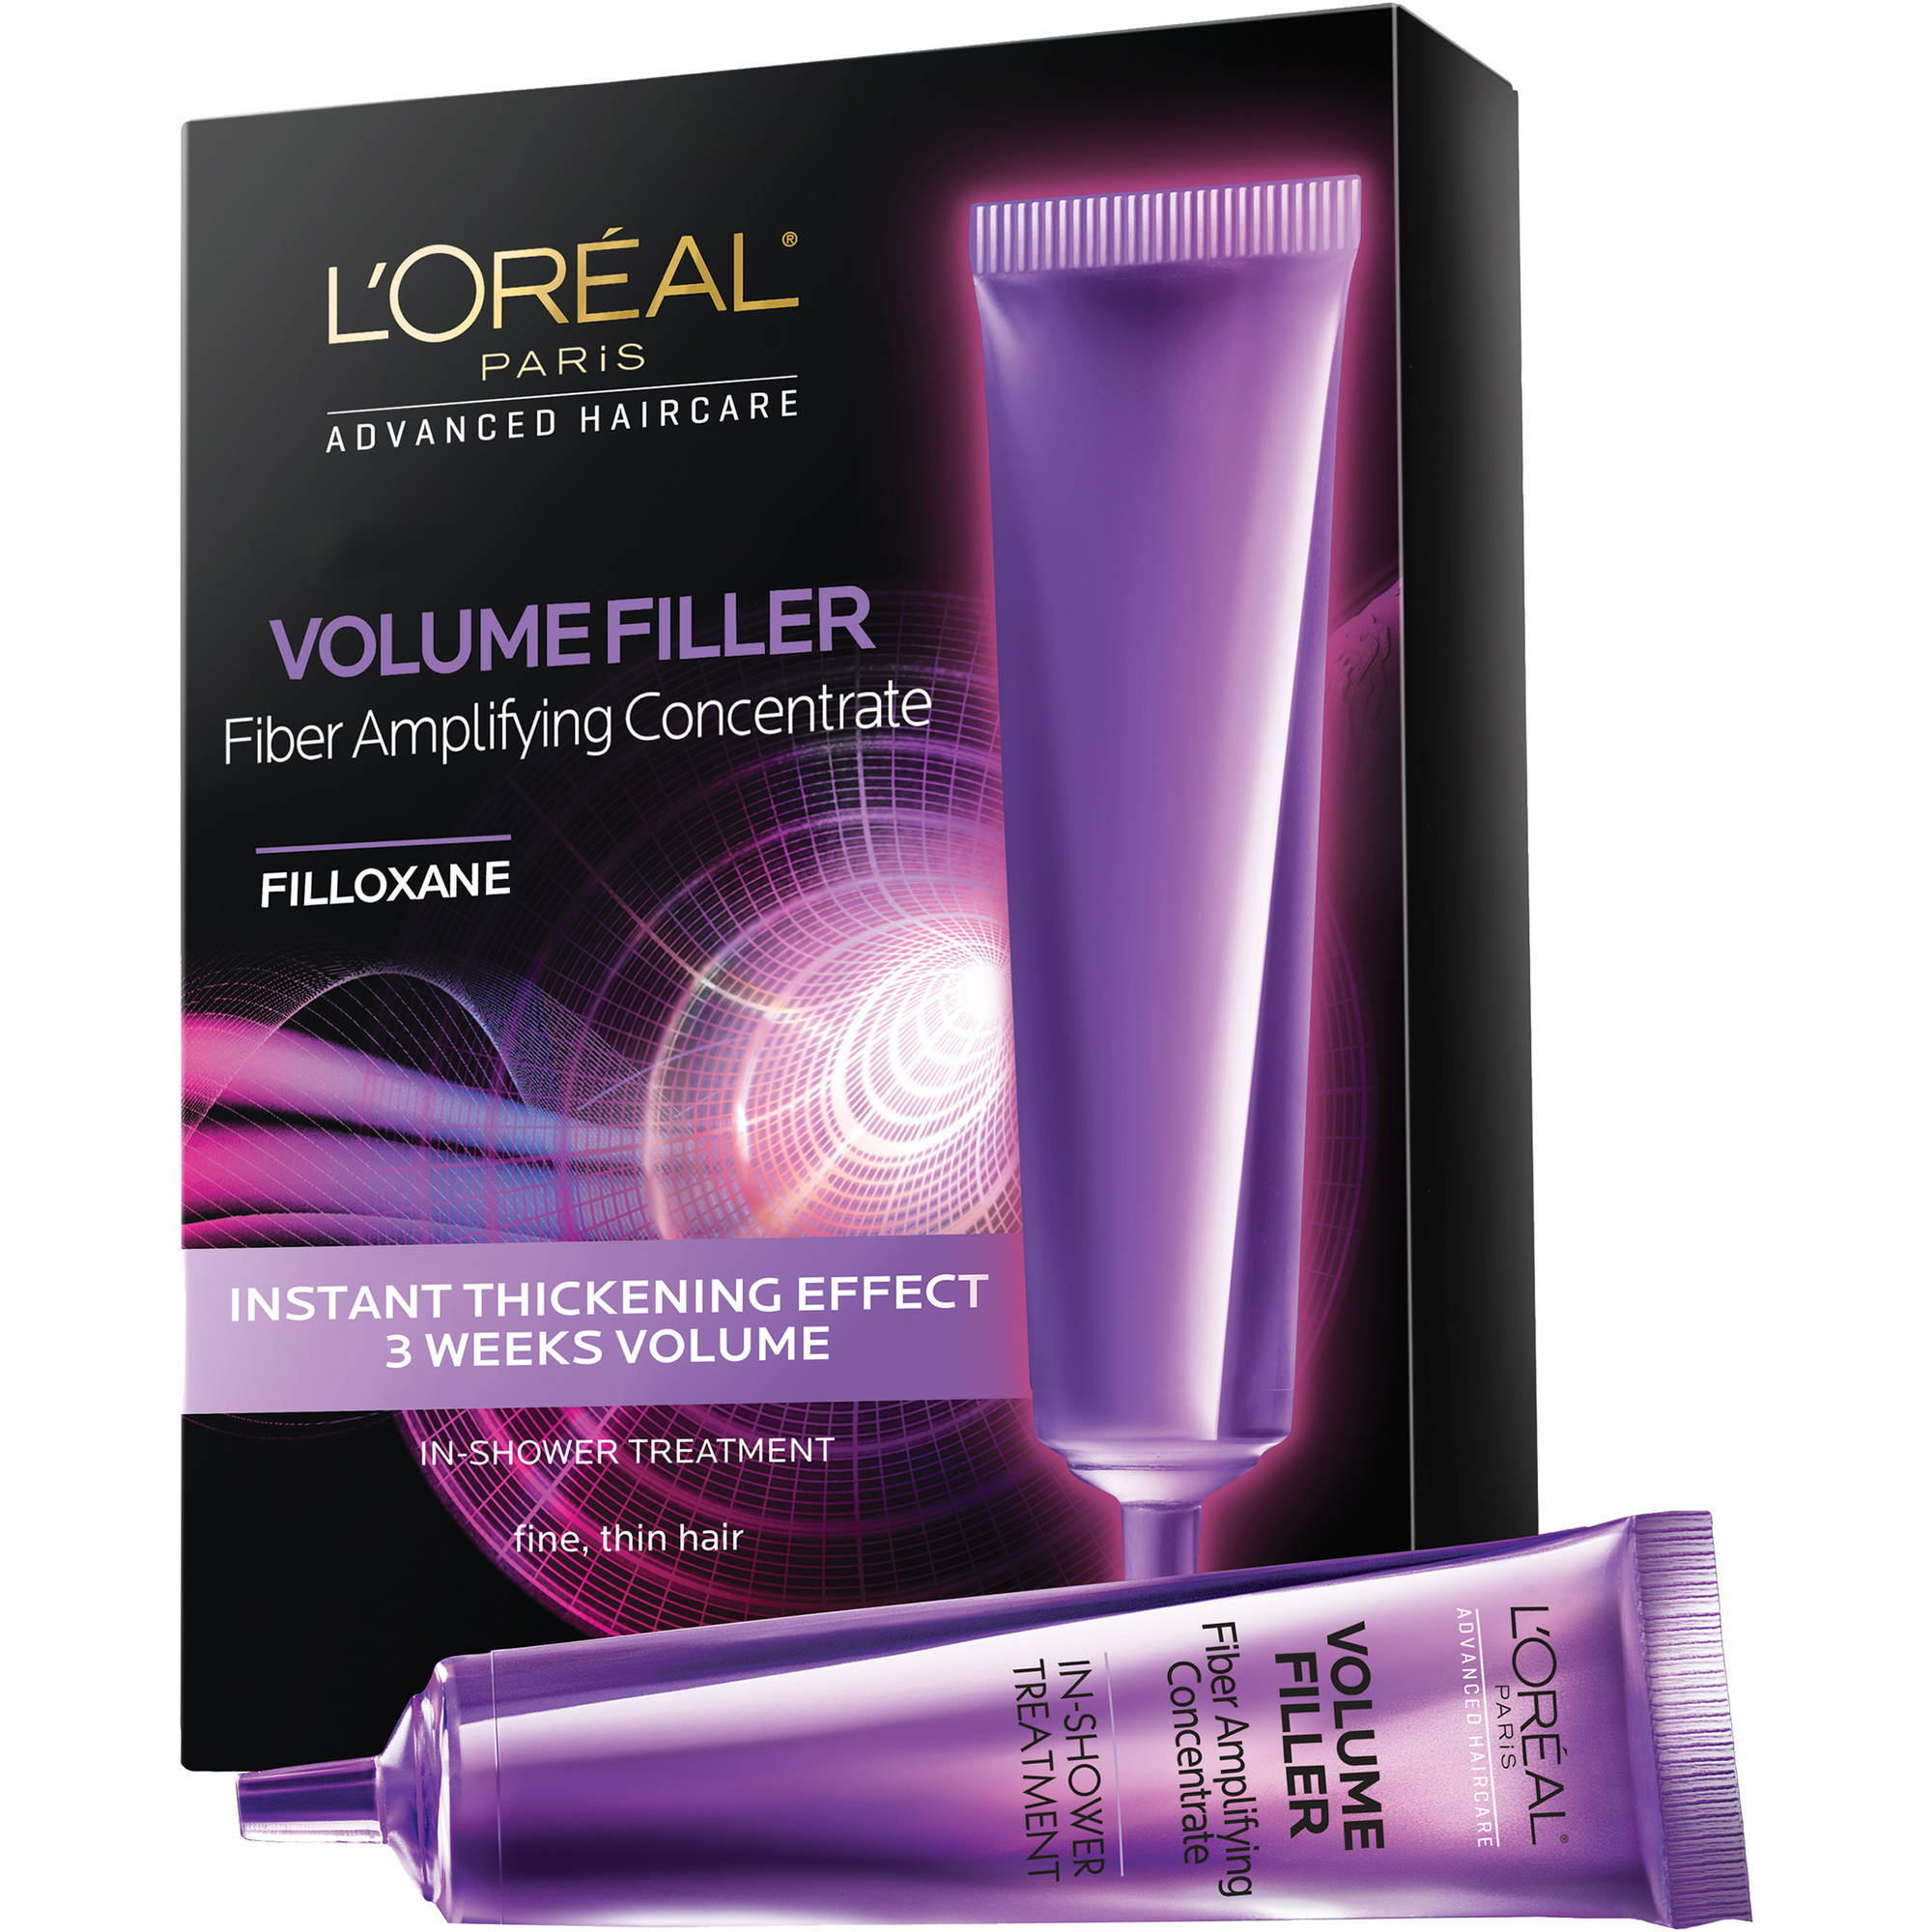 L'Oreal Paris Advanced Haircare Volume Filler Fiber Amplifying Concentrate, 3 count